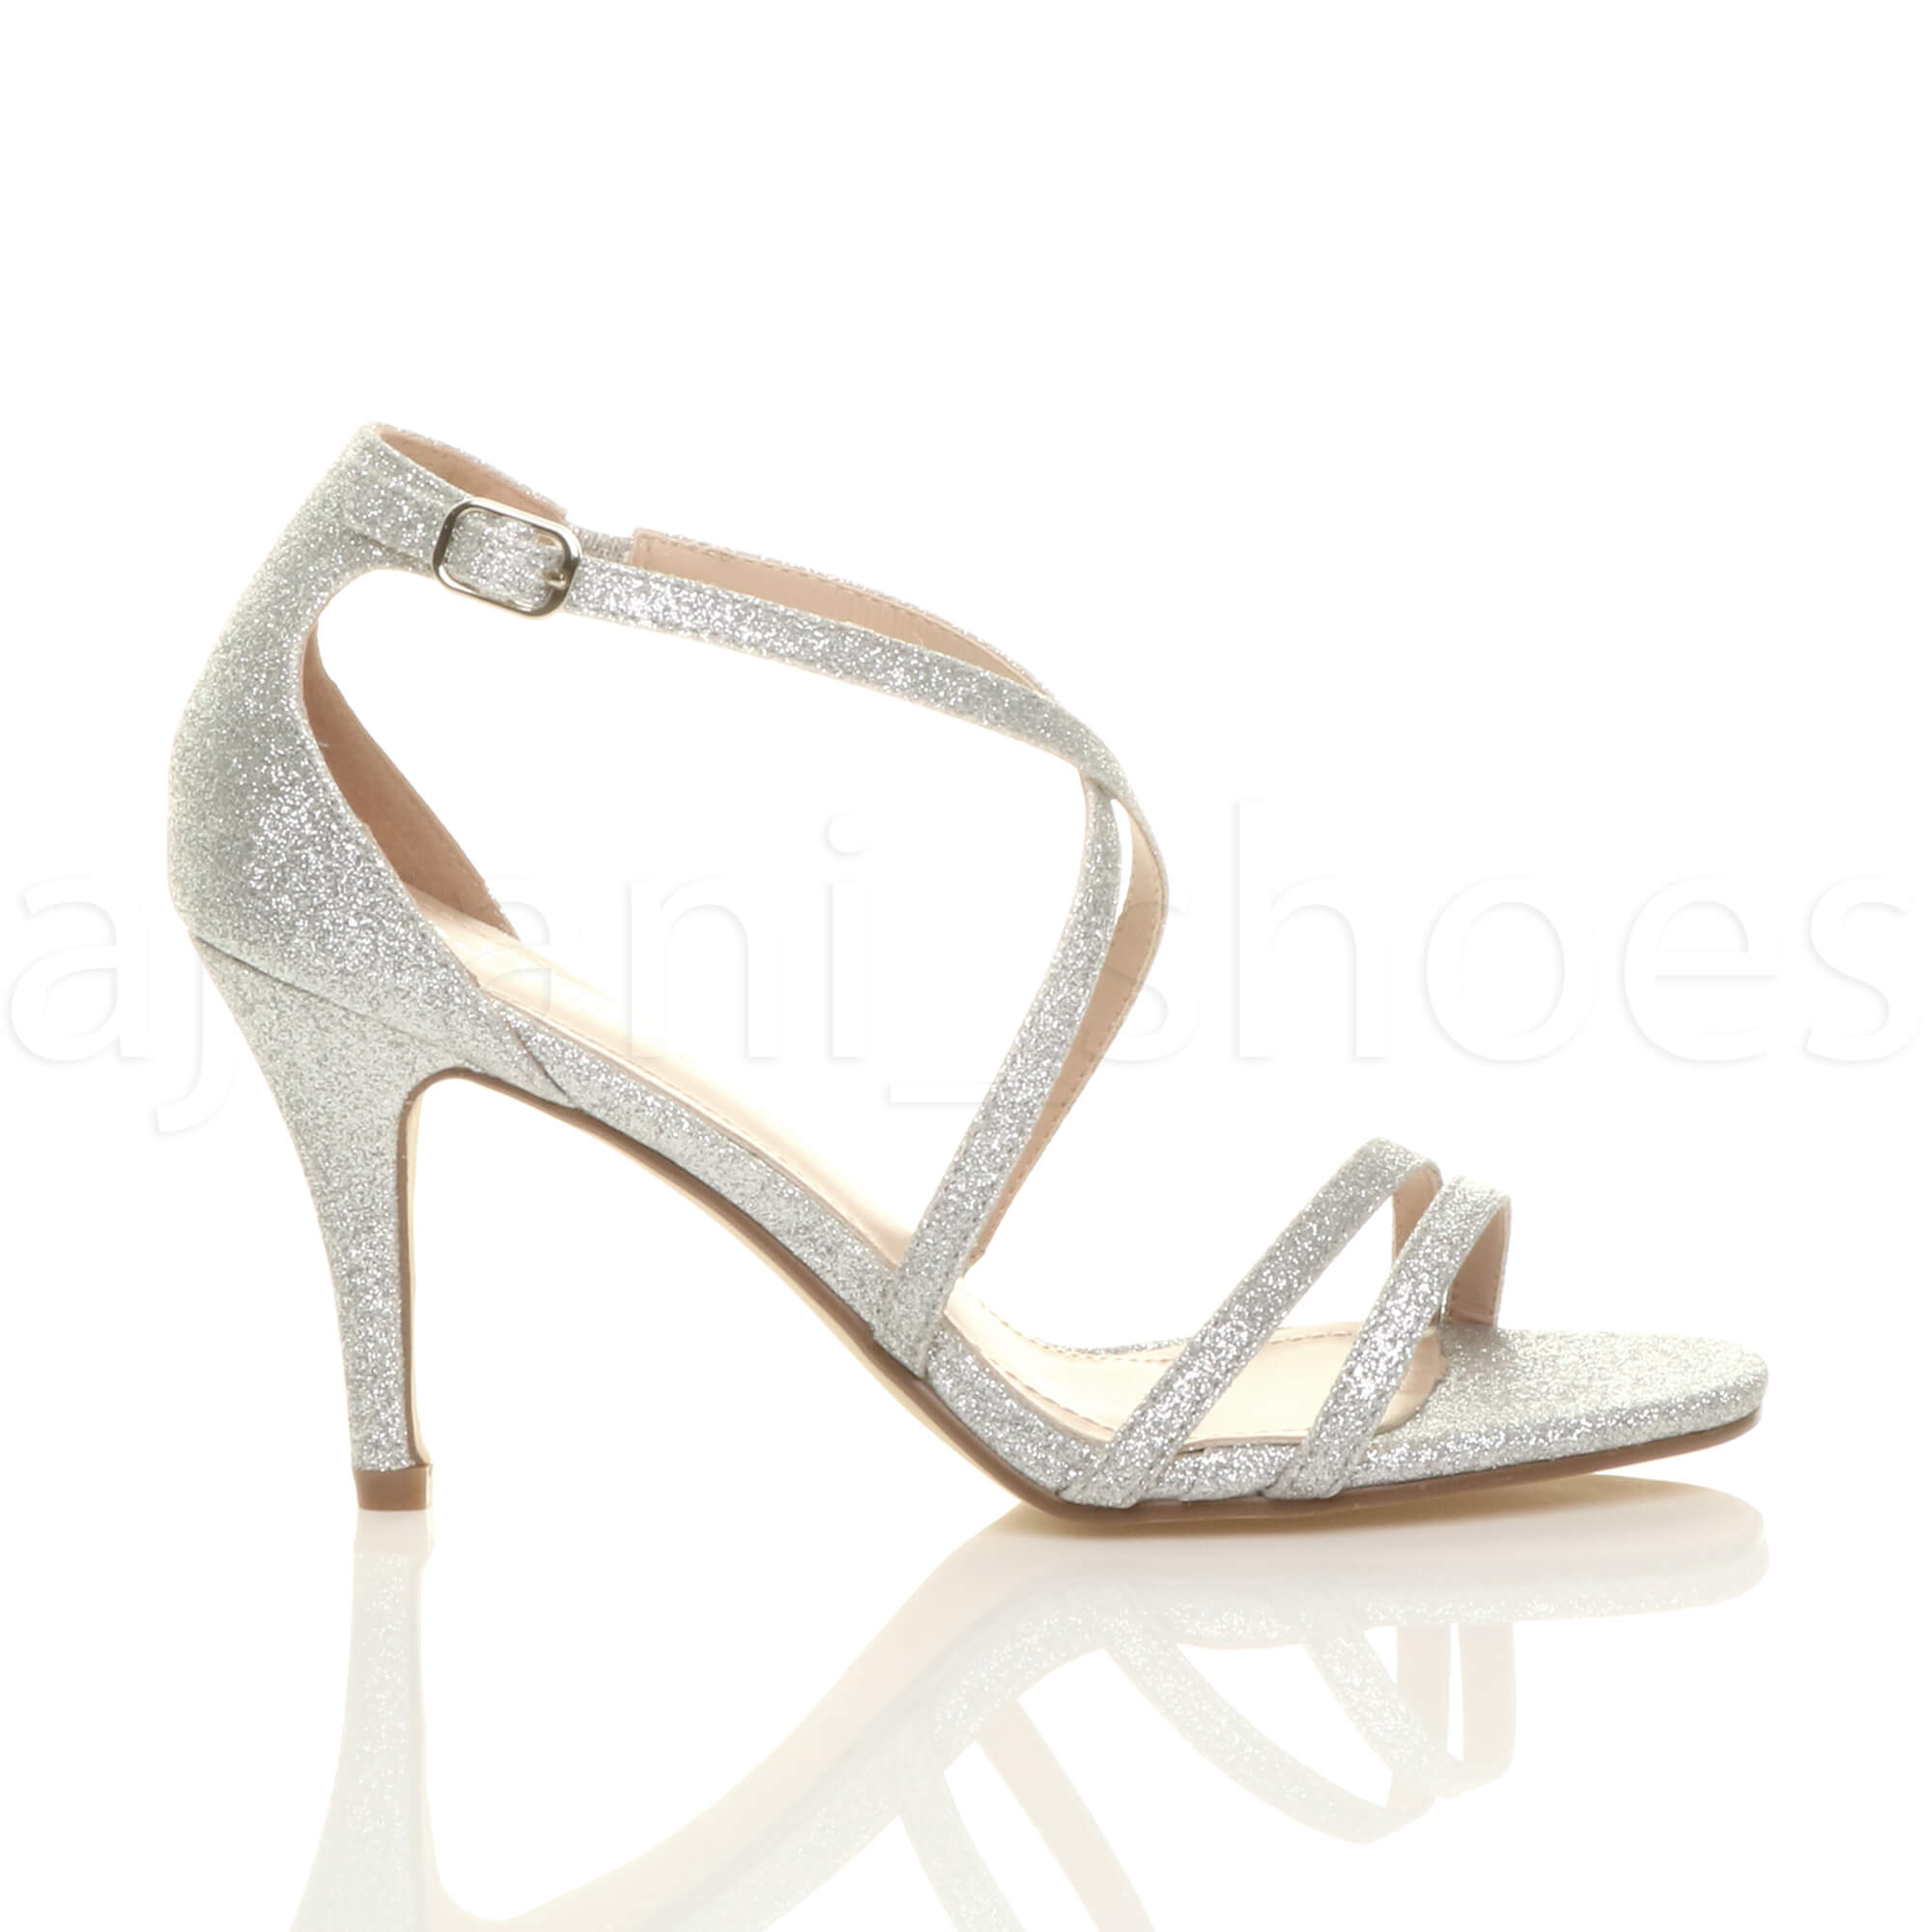 WOMENS-LADIES-MID-HIGH-HEEL-STRAPPY-CROSSOVER-WEDDING-PROM-SANDALS-SHOES-SIZE thumbnail 143